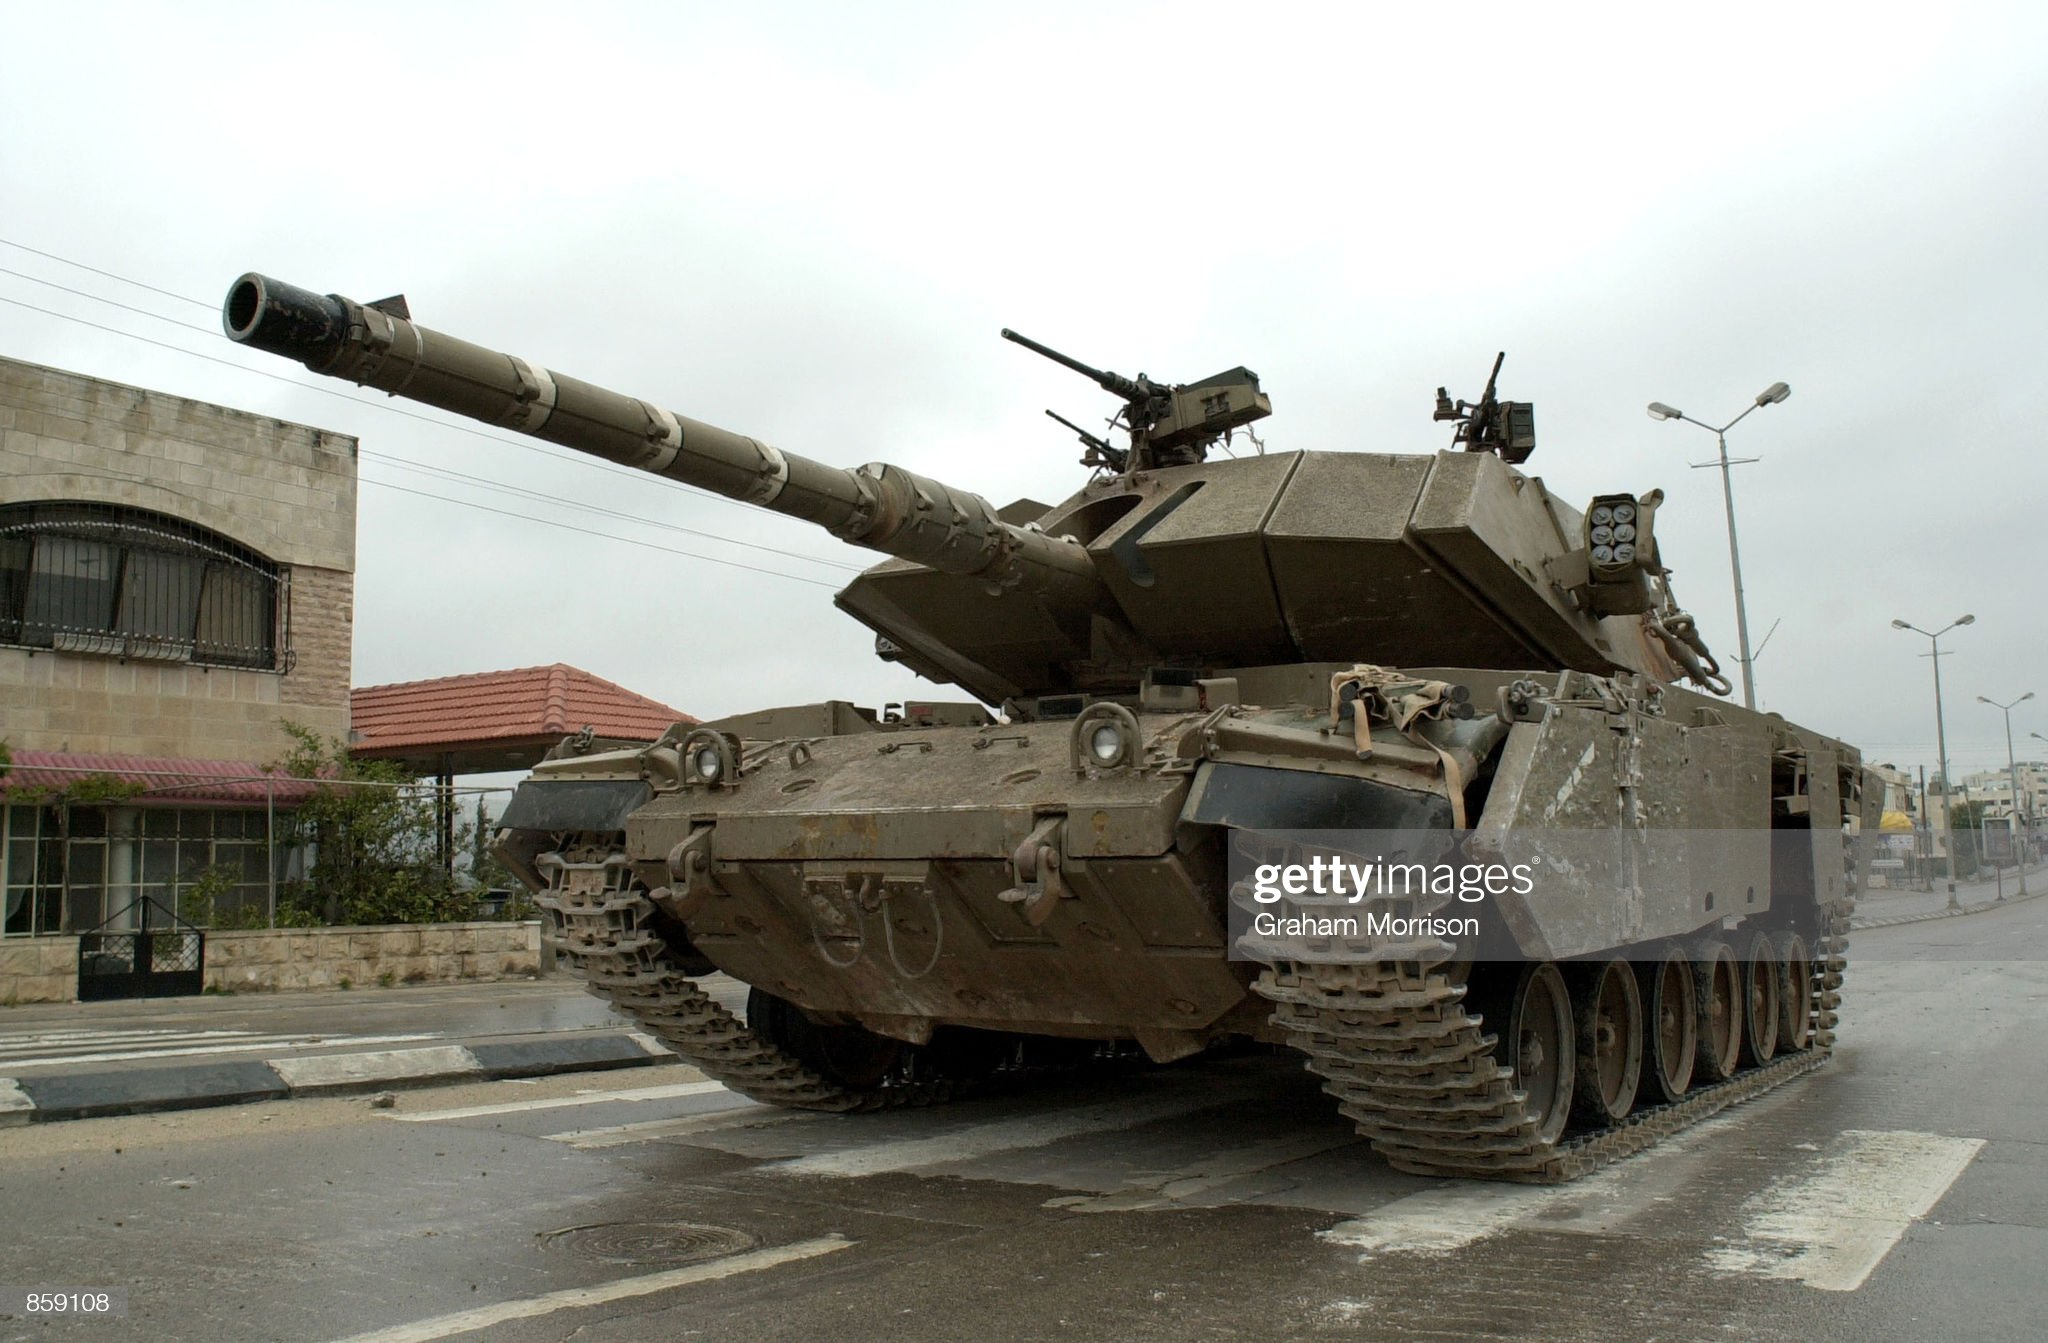 https://media.gettyimages.com/photos/an-israeli-tank-pauses-on-hebron-road-which-divides-the-west-bank-of-picture-id859108?s=2048x2048